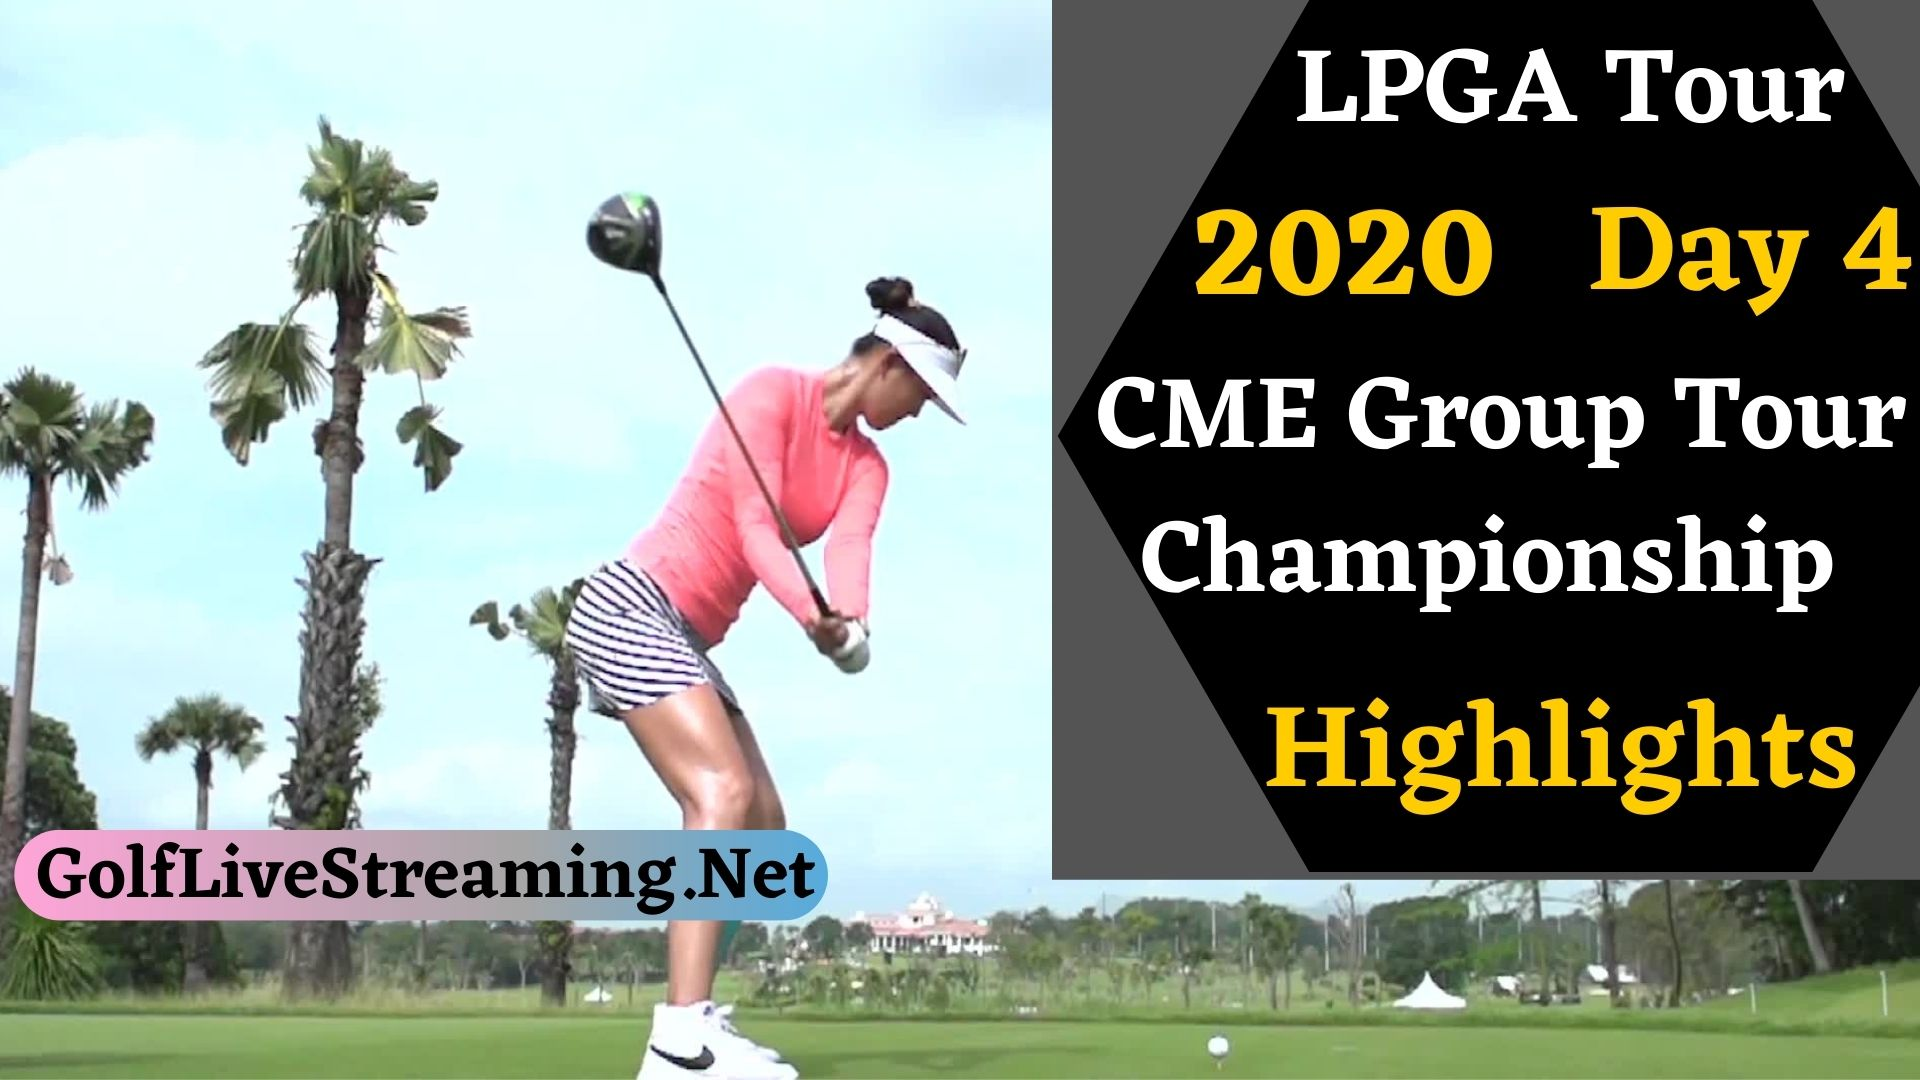 CME Group Tour Championship Day 4 Highlights 2020 LPGA Tour